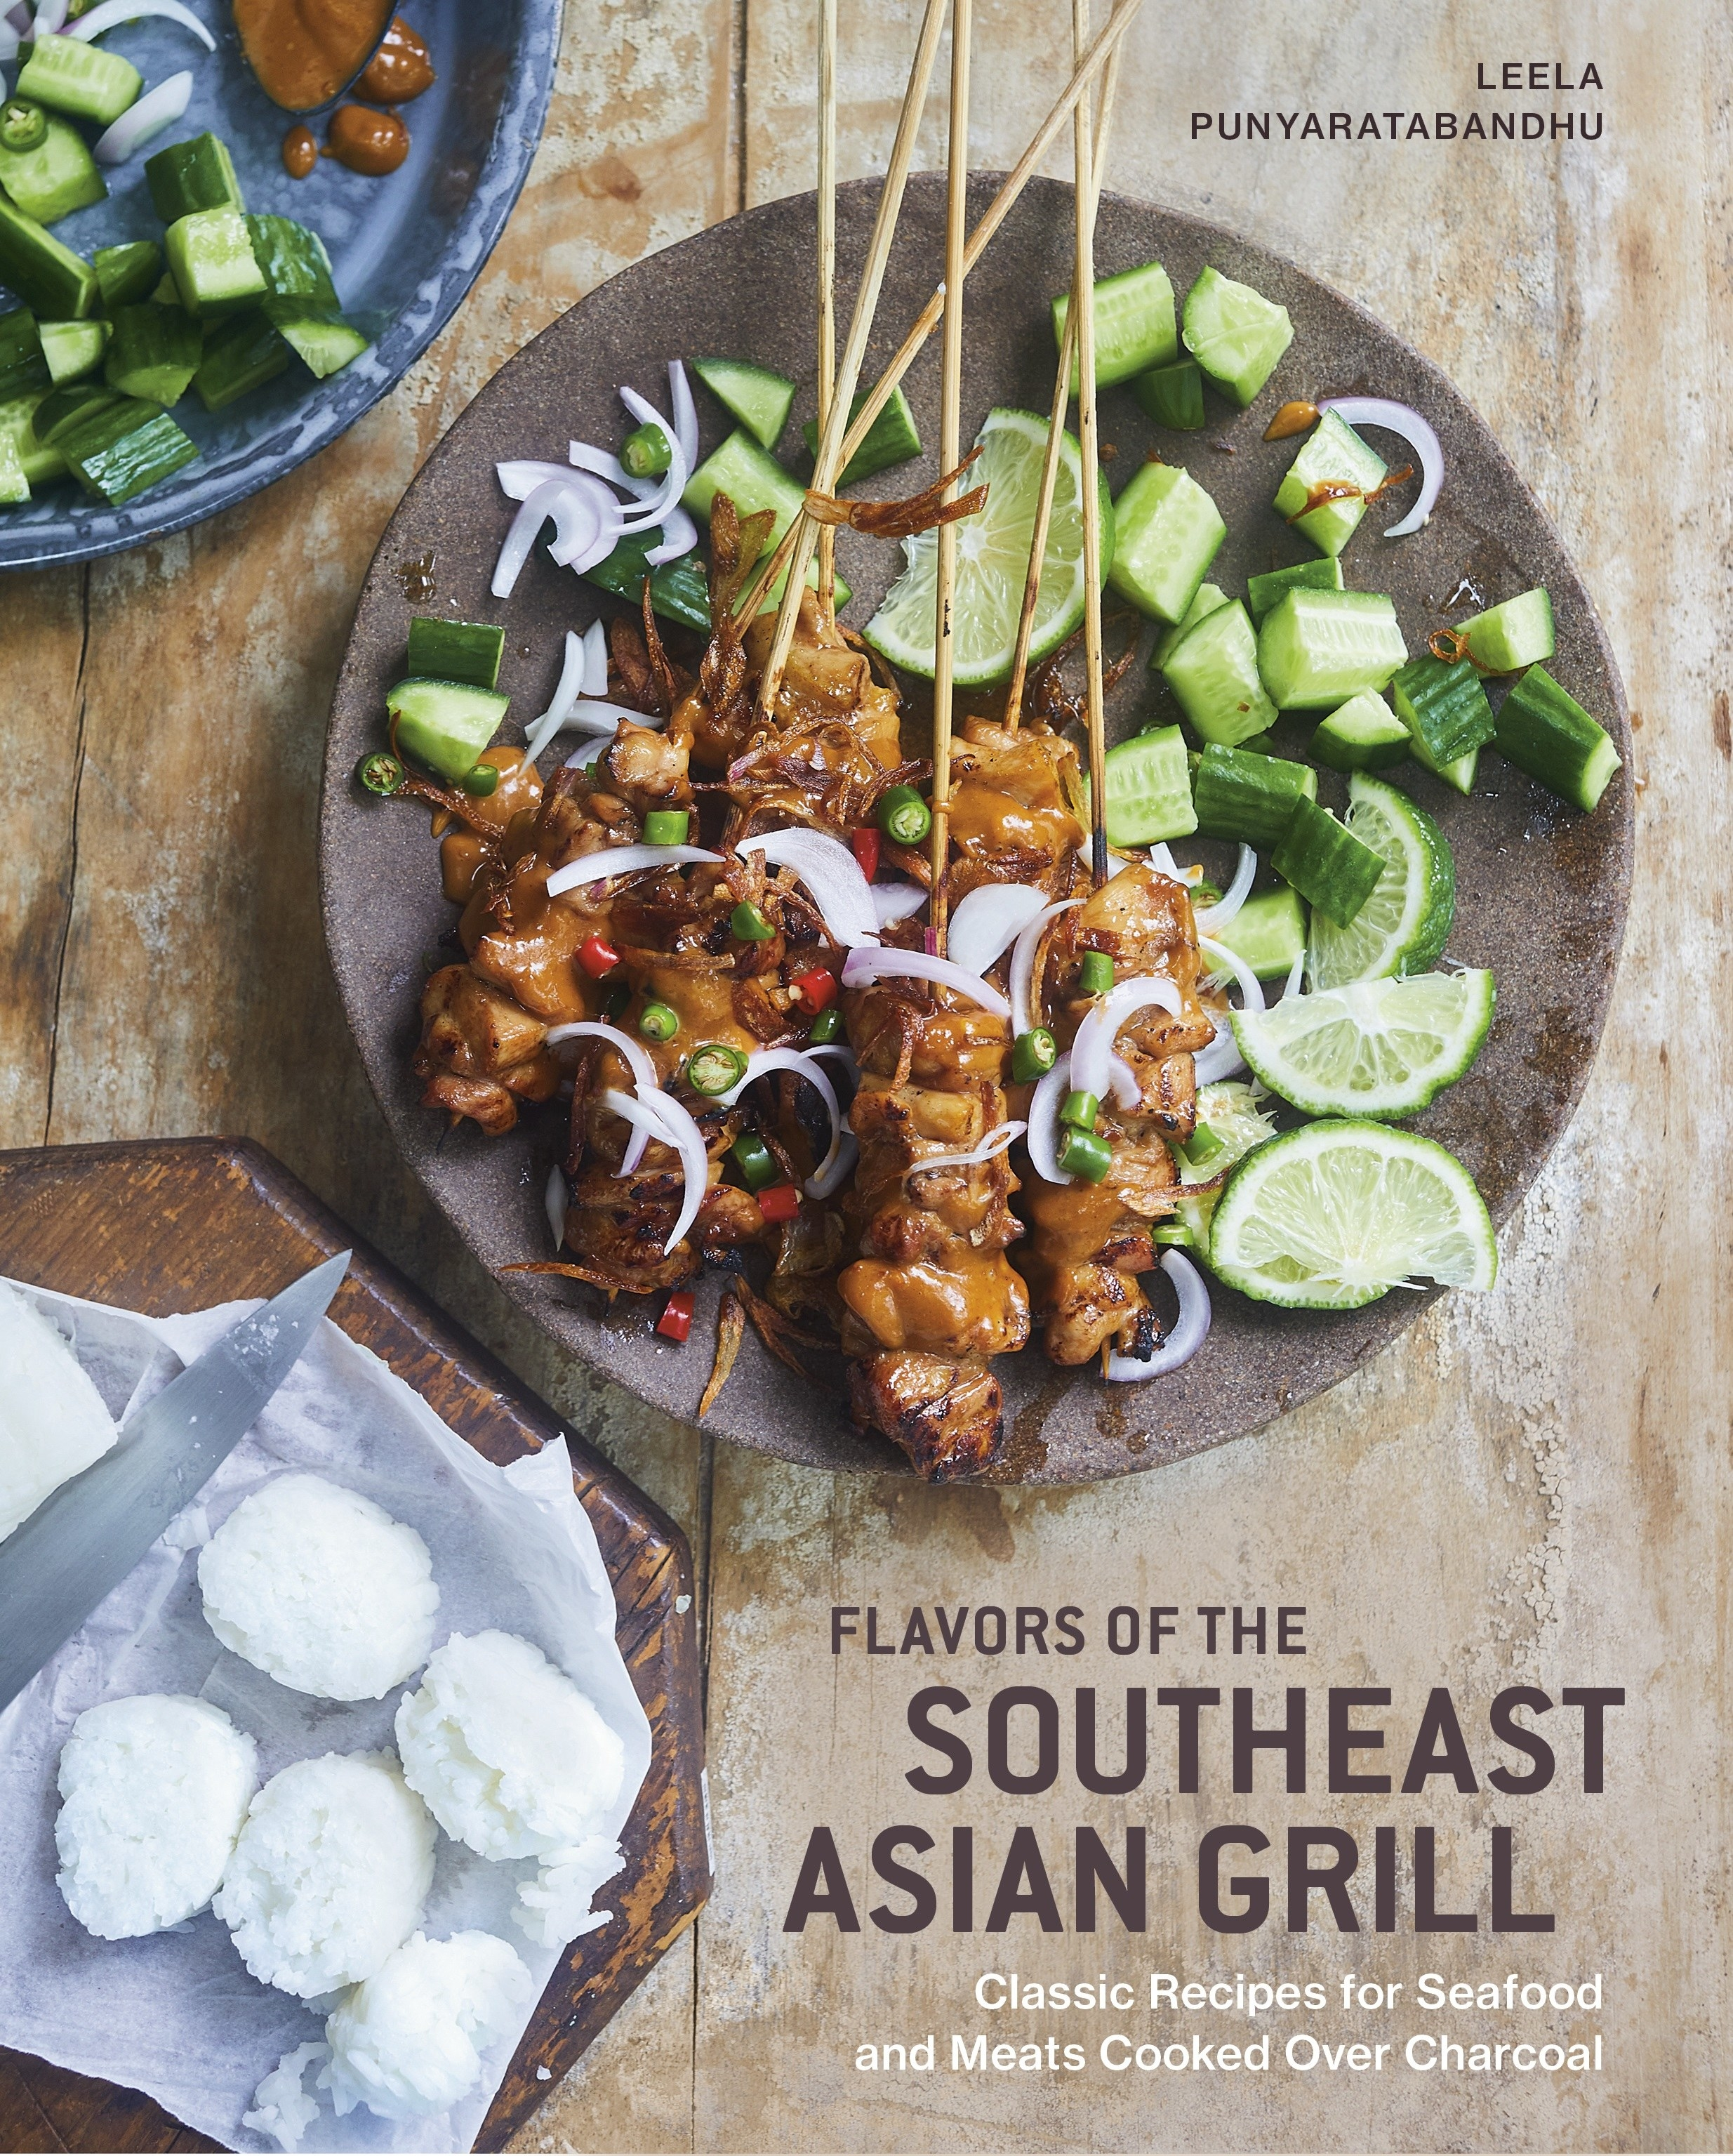 The cover of 'Flavors of the Southeast Asian Grill' by Leela Punyaratabandhu